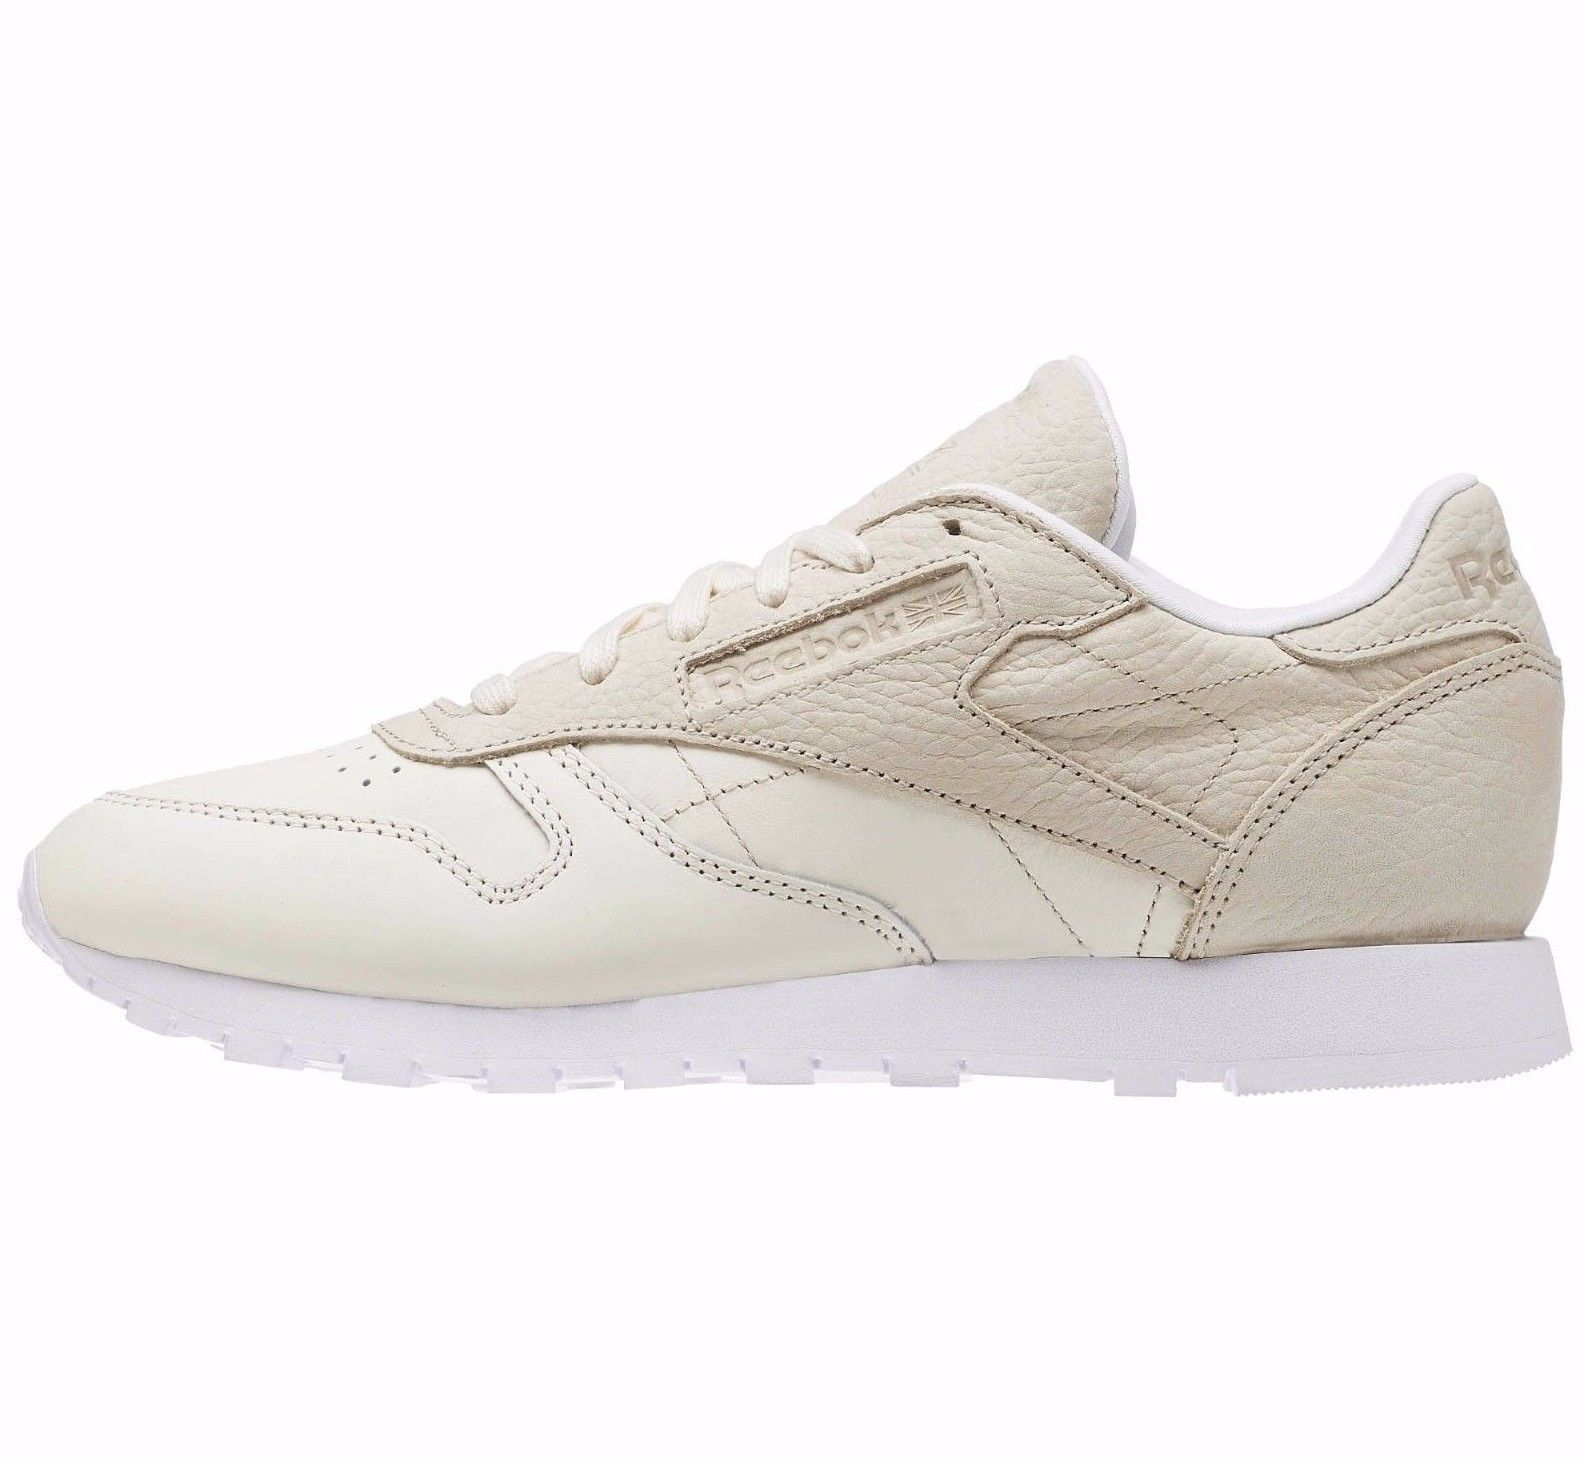 REEBOK CLASSIC LEATHER  SEA YOU LATER TRAINERS :  blanc /BEIGE : BD3105 :6, 7